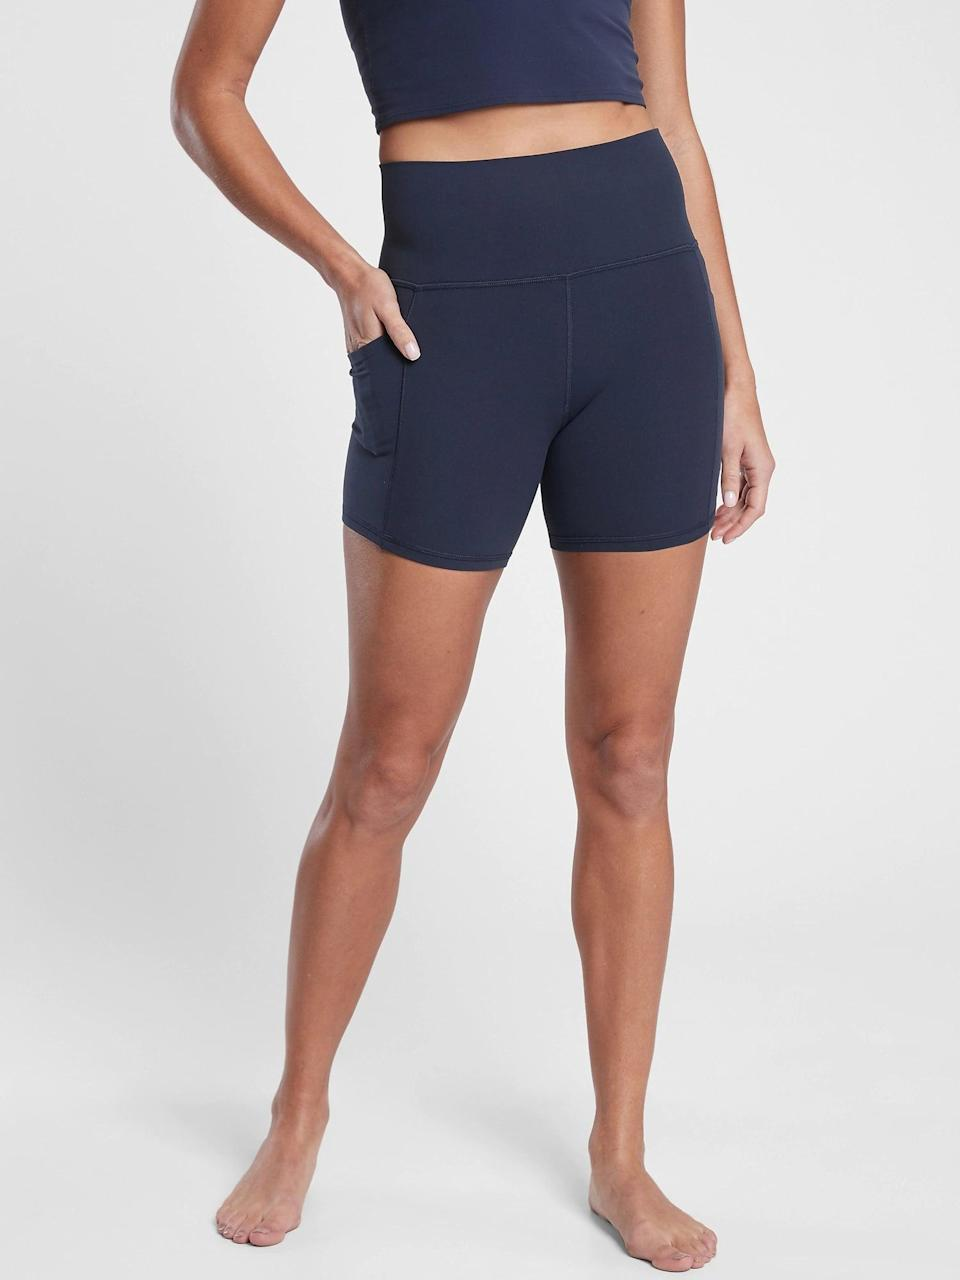 <p>These <span>Athleta Salutation Stash Pocket Shorts</span> ($59) are made in a stretchy fabric, while the side pockets offer storage for your keys or small cardholder.</p>